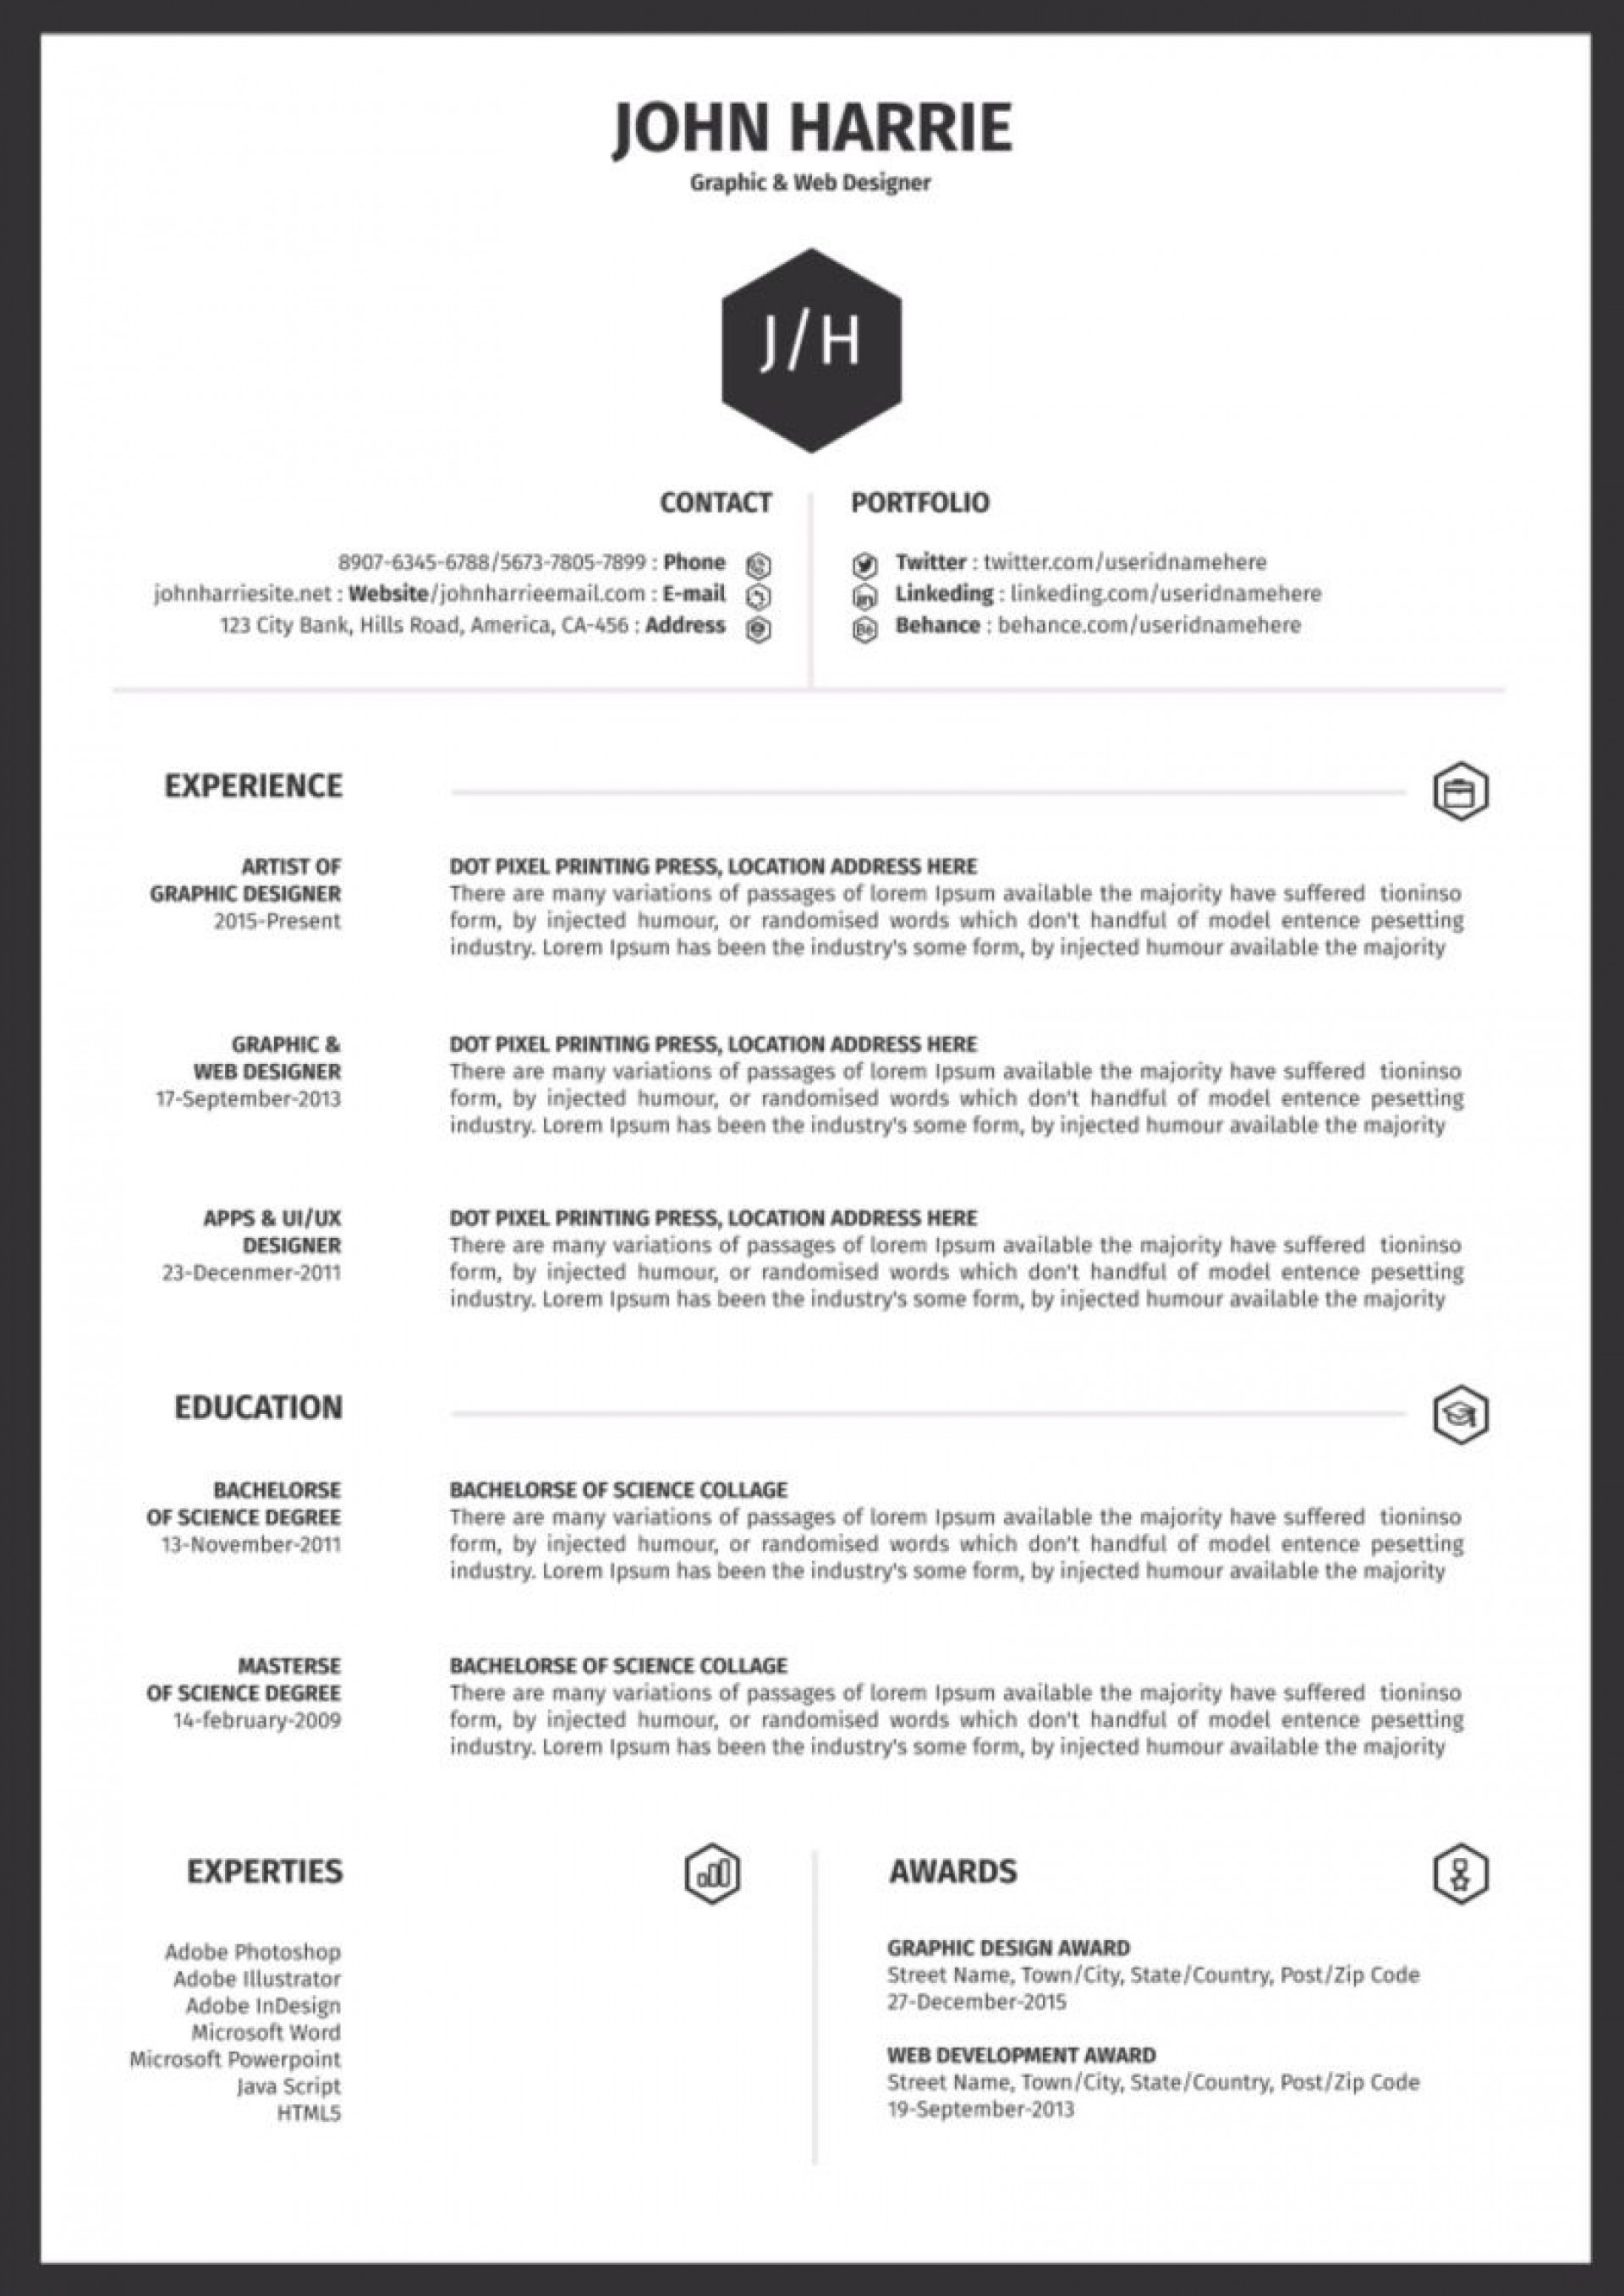 009 Fearsome One Page Resume Template Image  Templates Microsoft Word Free1920